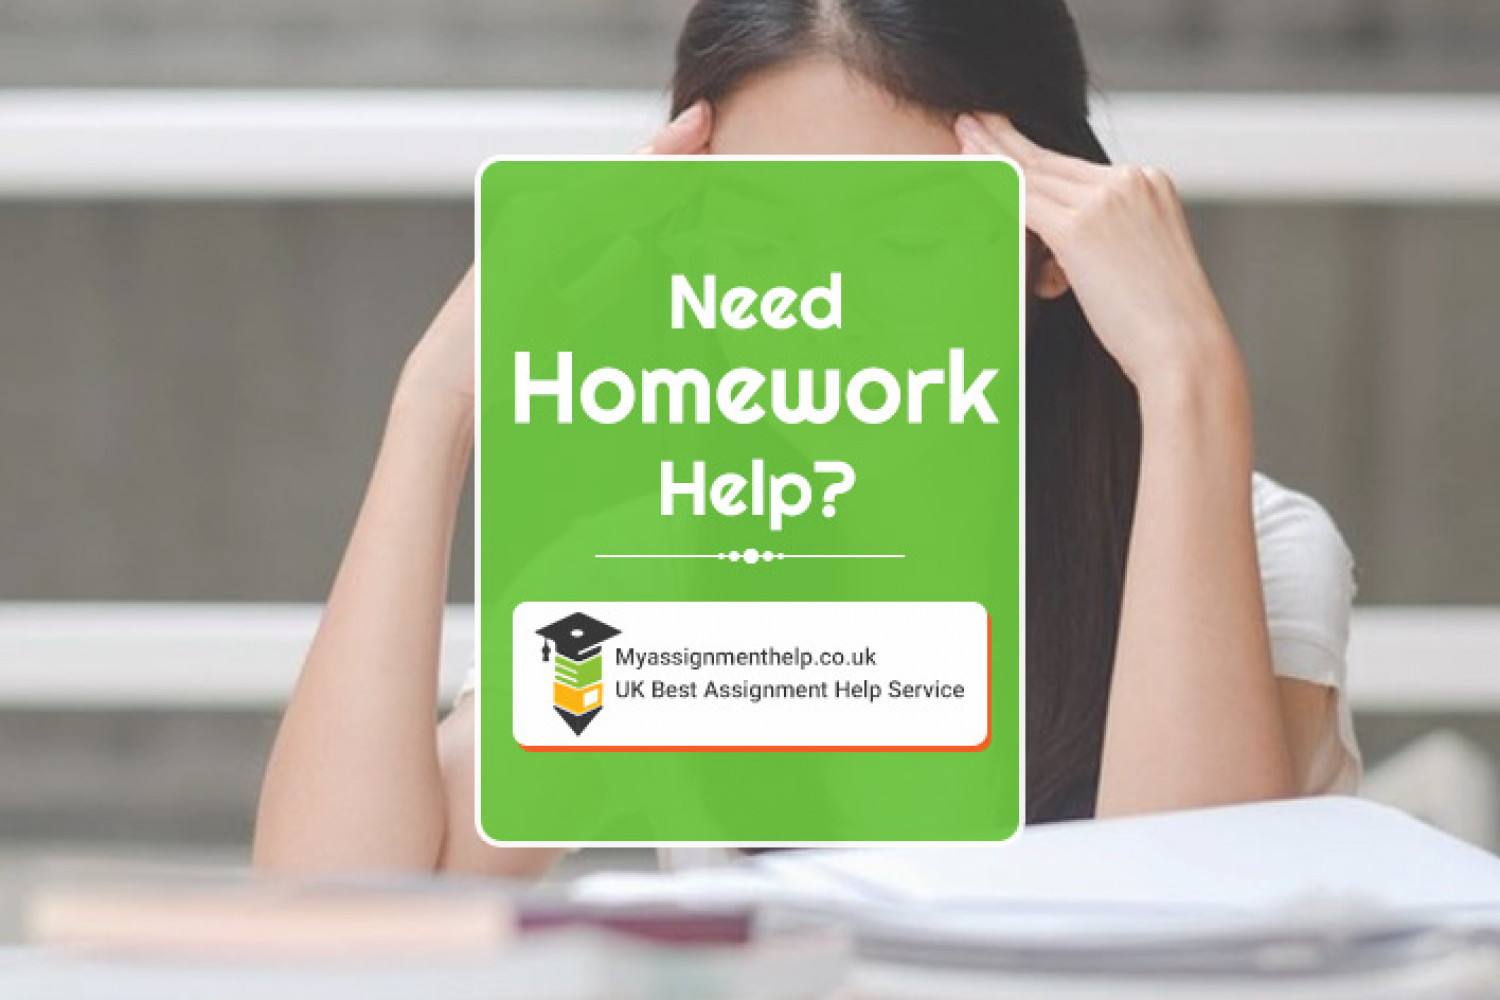 Need Homework Help and Answers Infographic